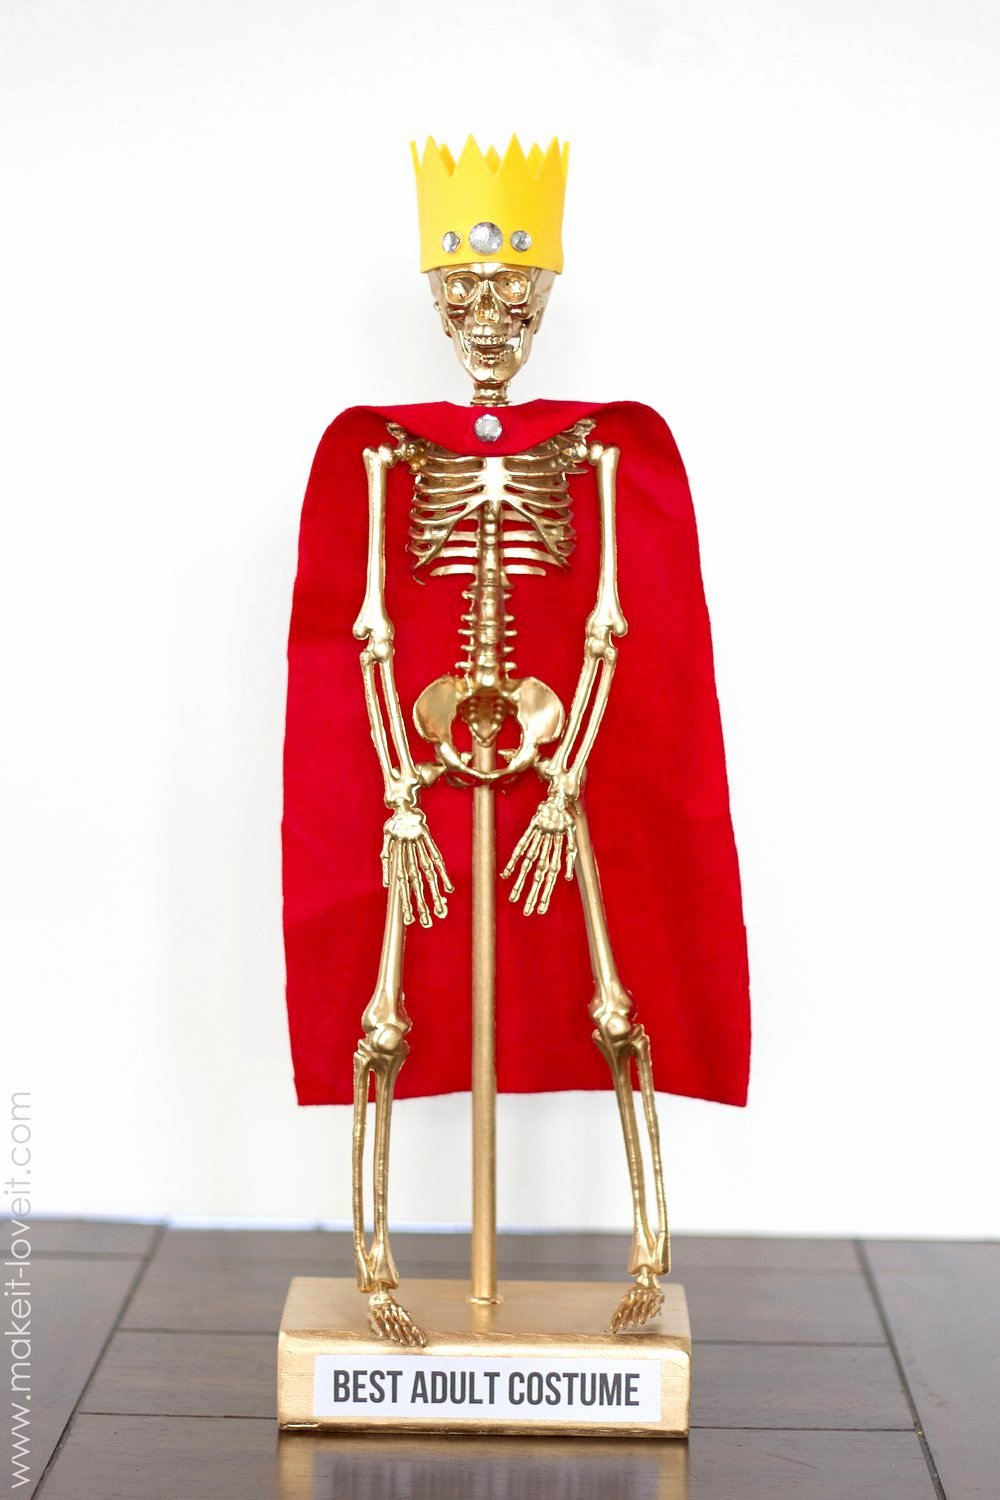 Best Costume Award Trophy Elegant Costume Award Trophies R Your Halloween Party